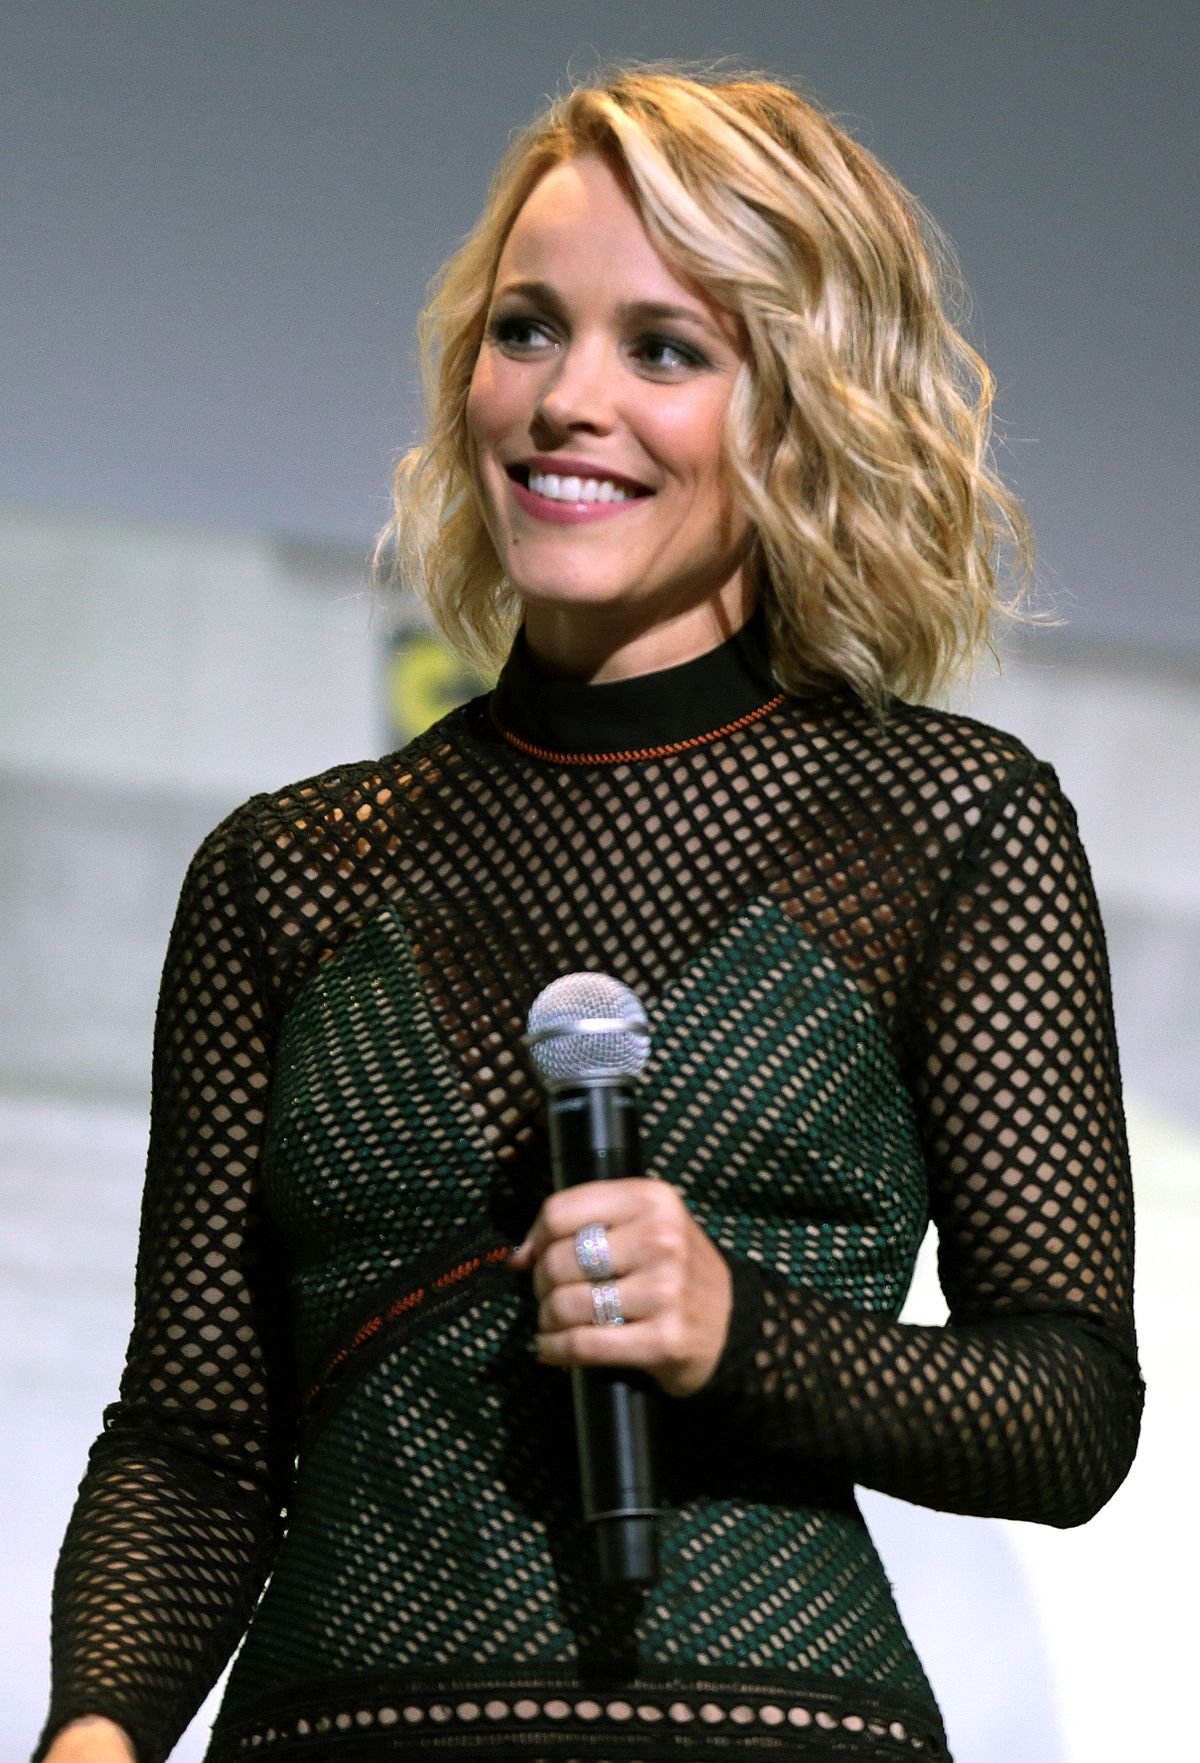 image Rachel mcadams morning glory